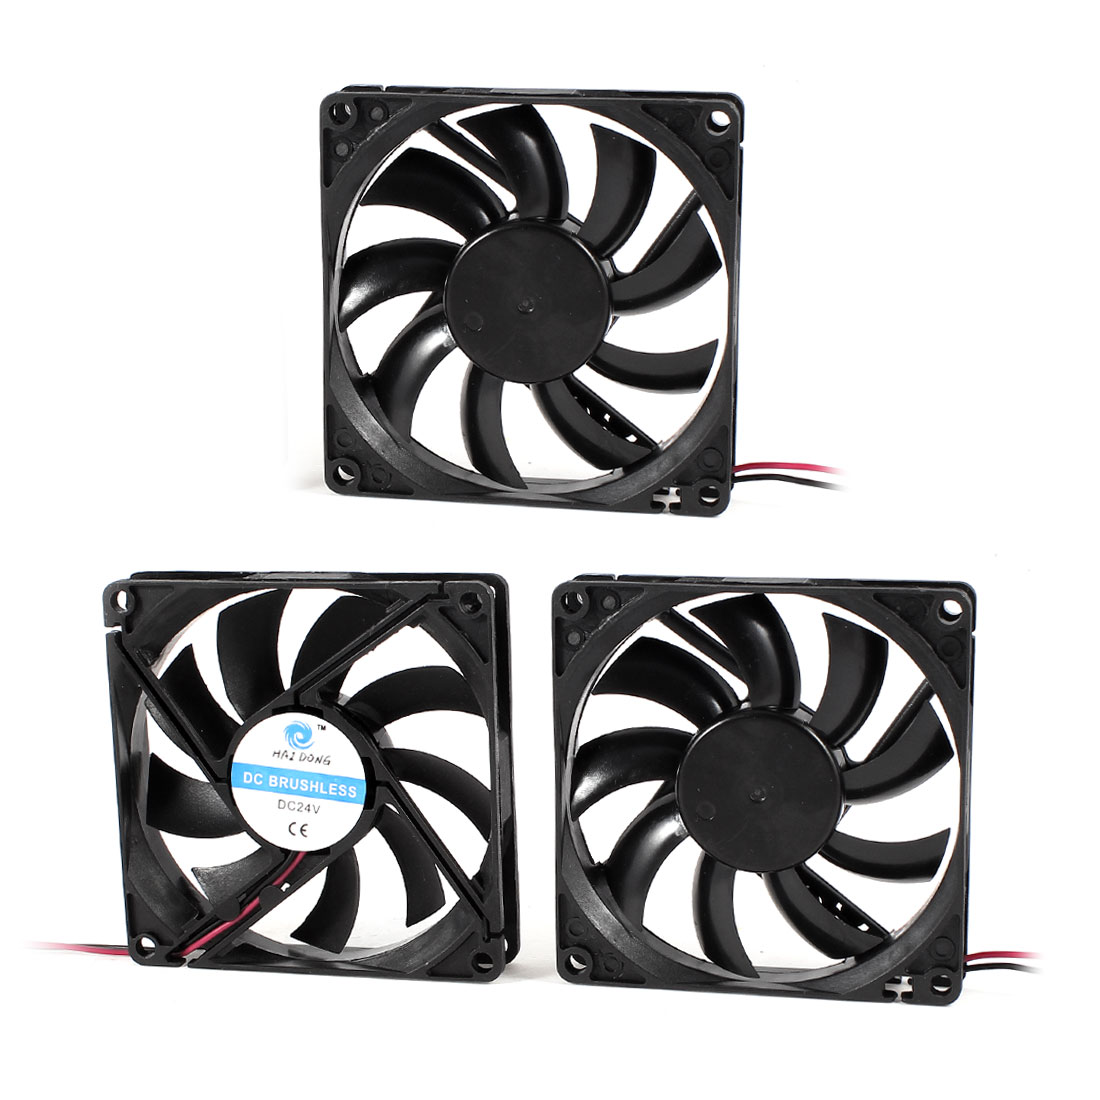 3 Pcs DC 24V 80mmx15mm 2 Wires Brushless Computer Case Cooling Fan Cooler Black